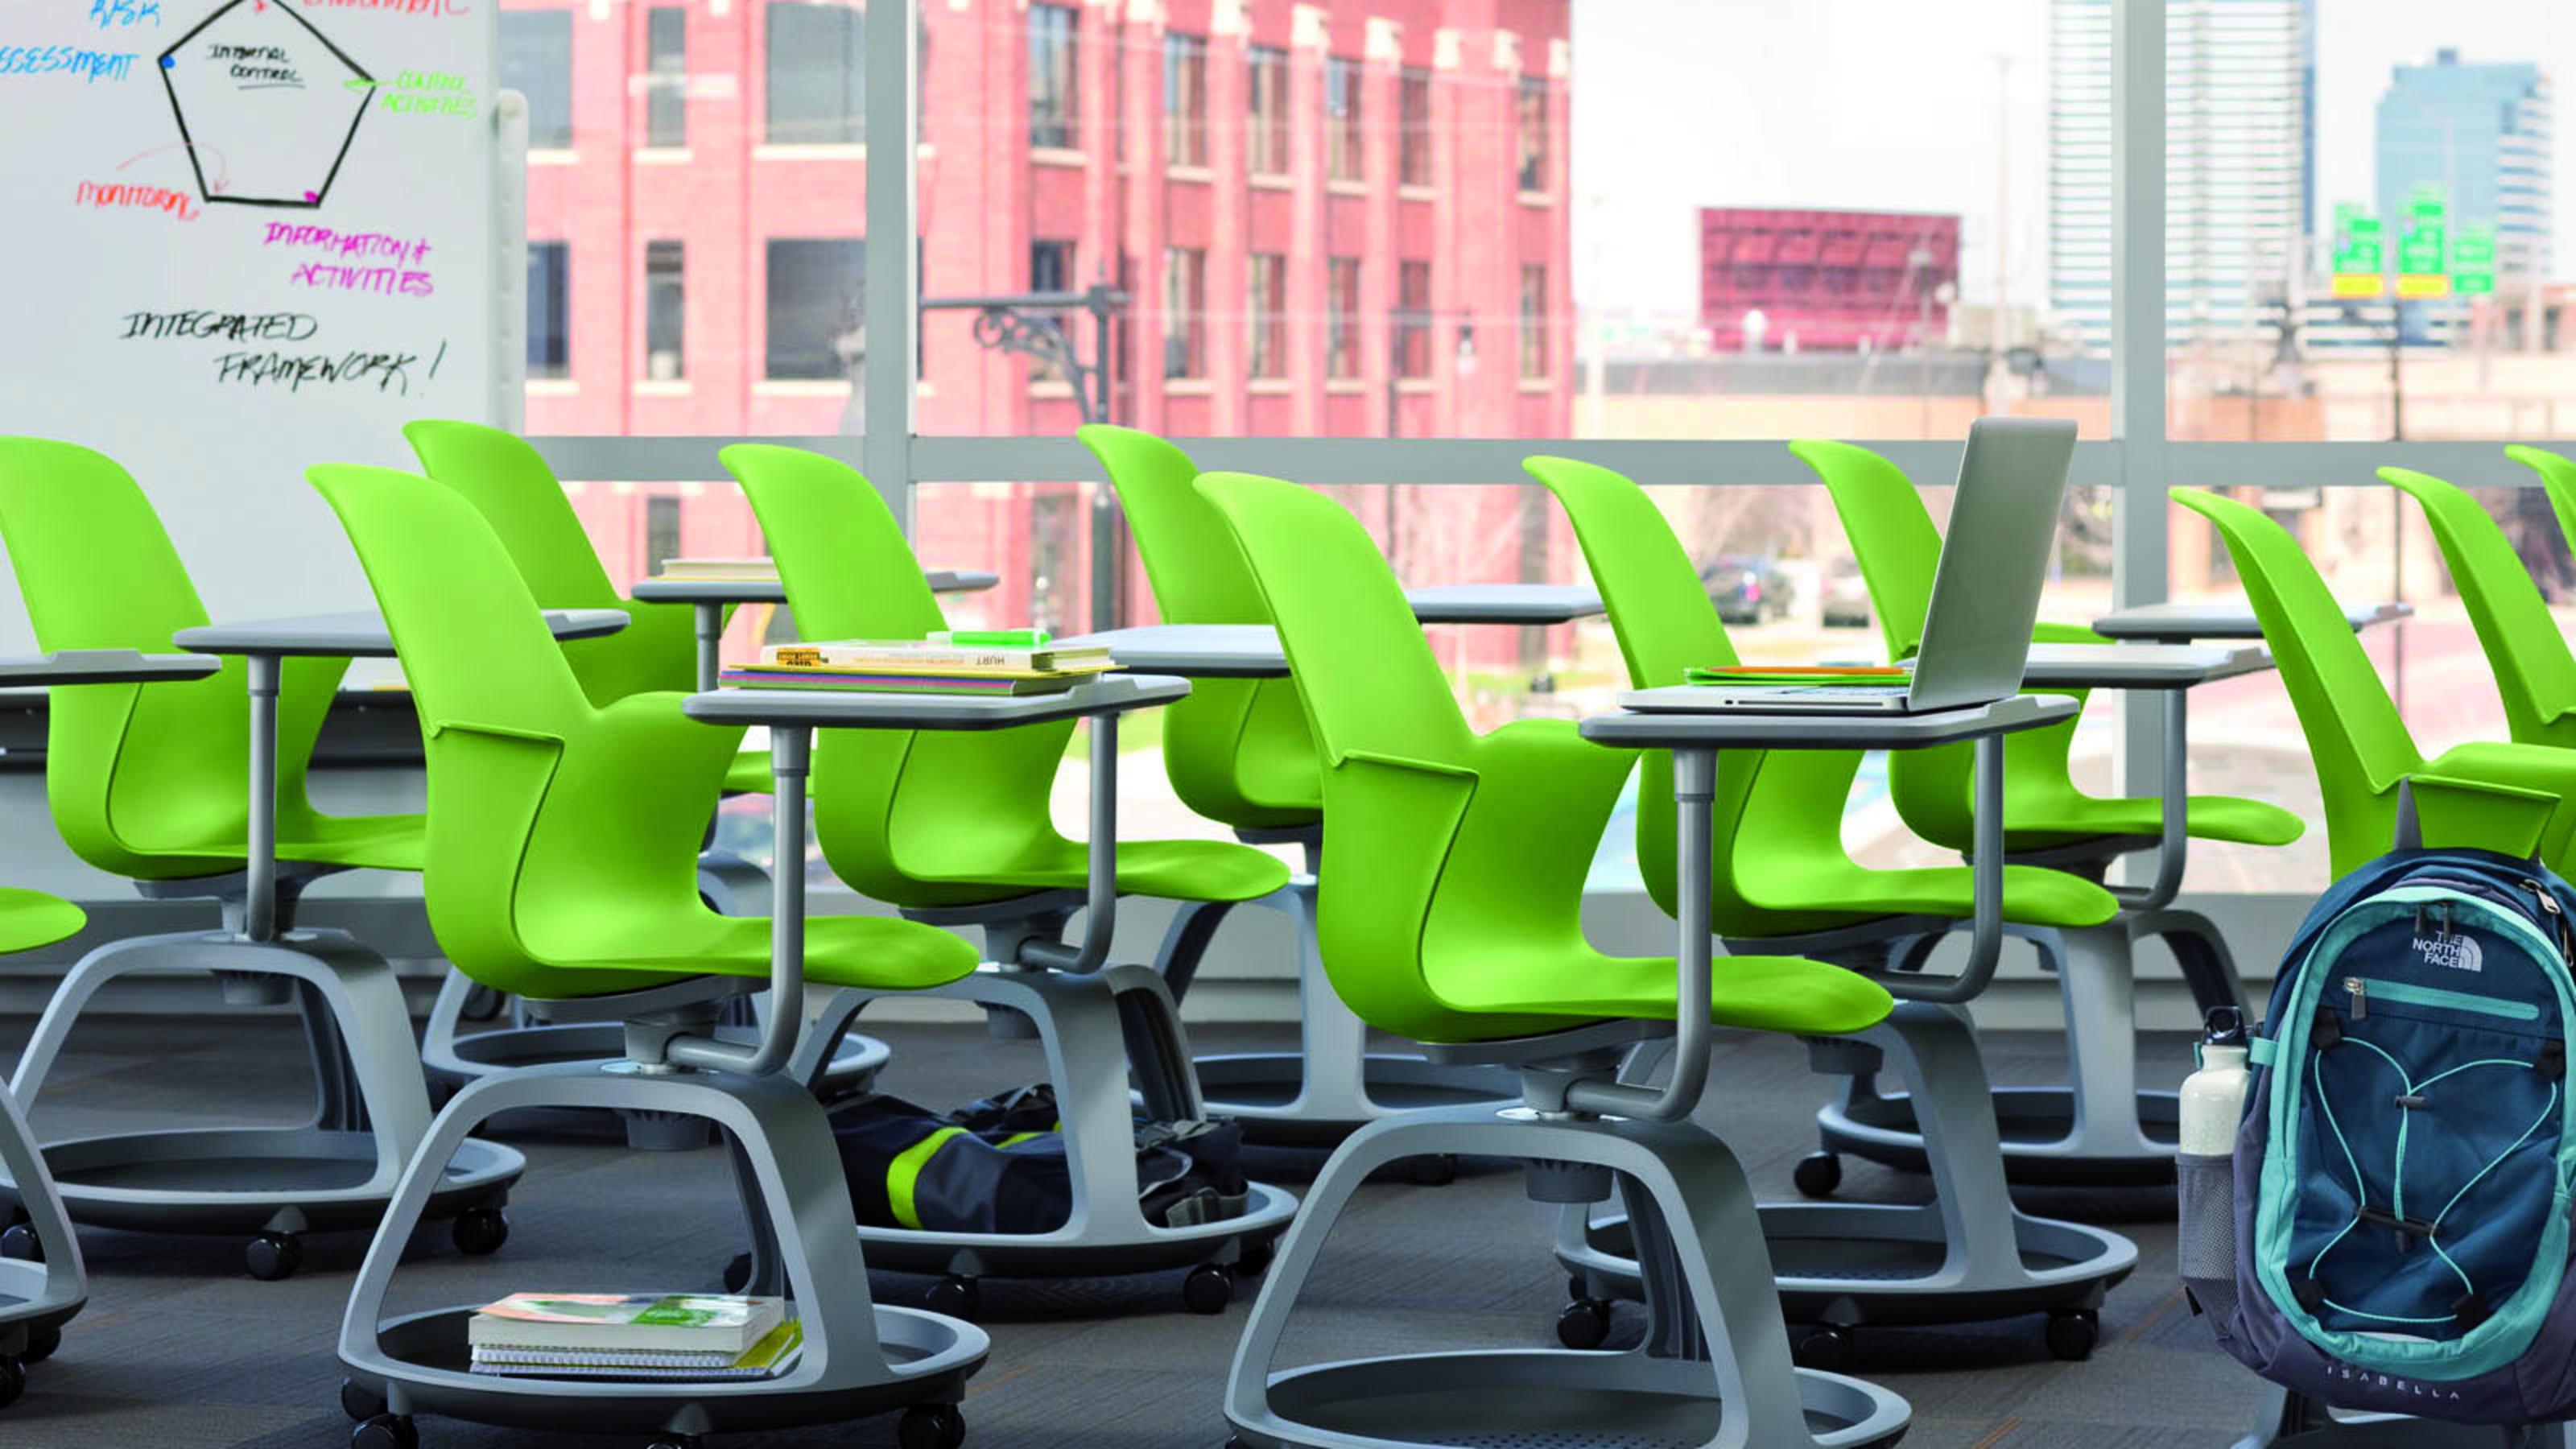 English Classroom Design Ideas ~ Node school chairs classroom for active learning